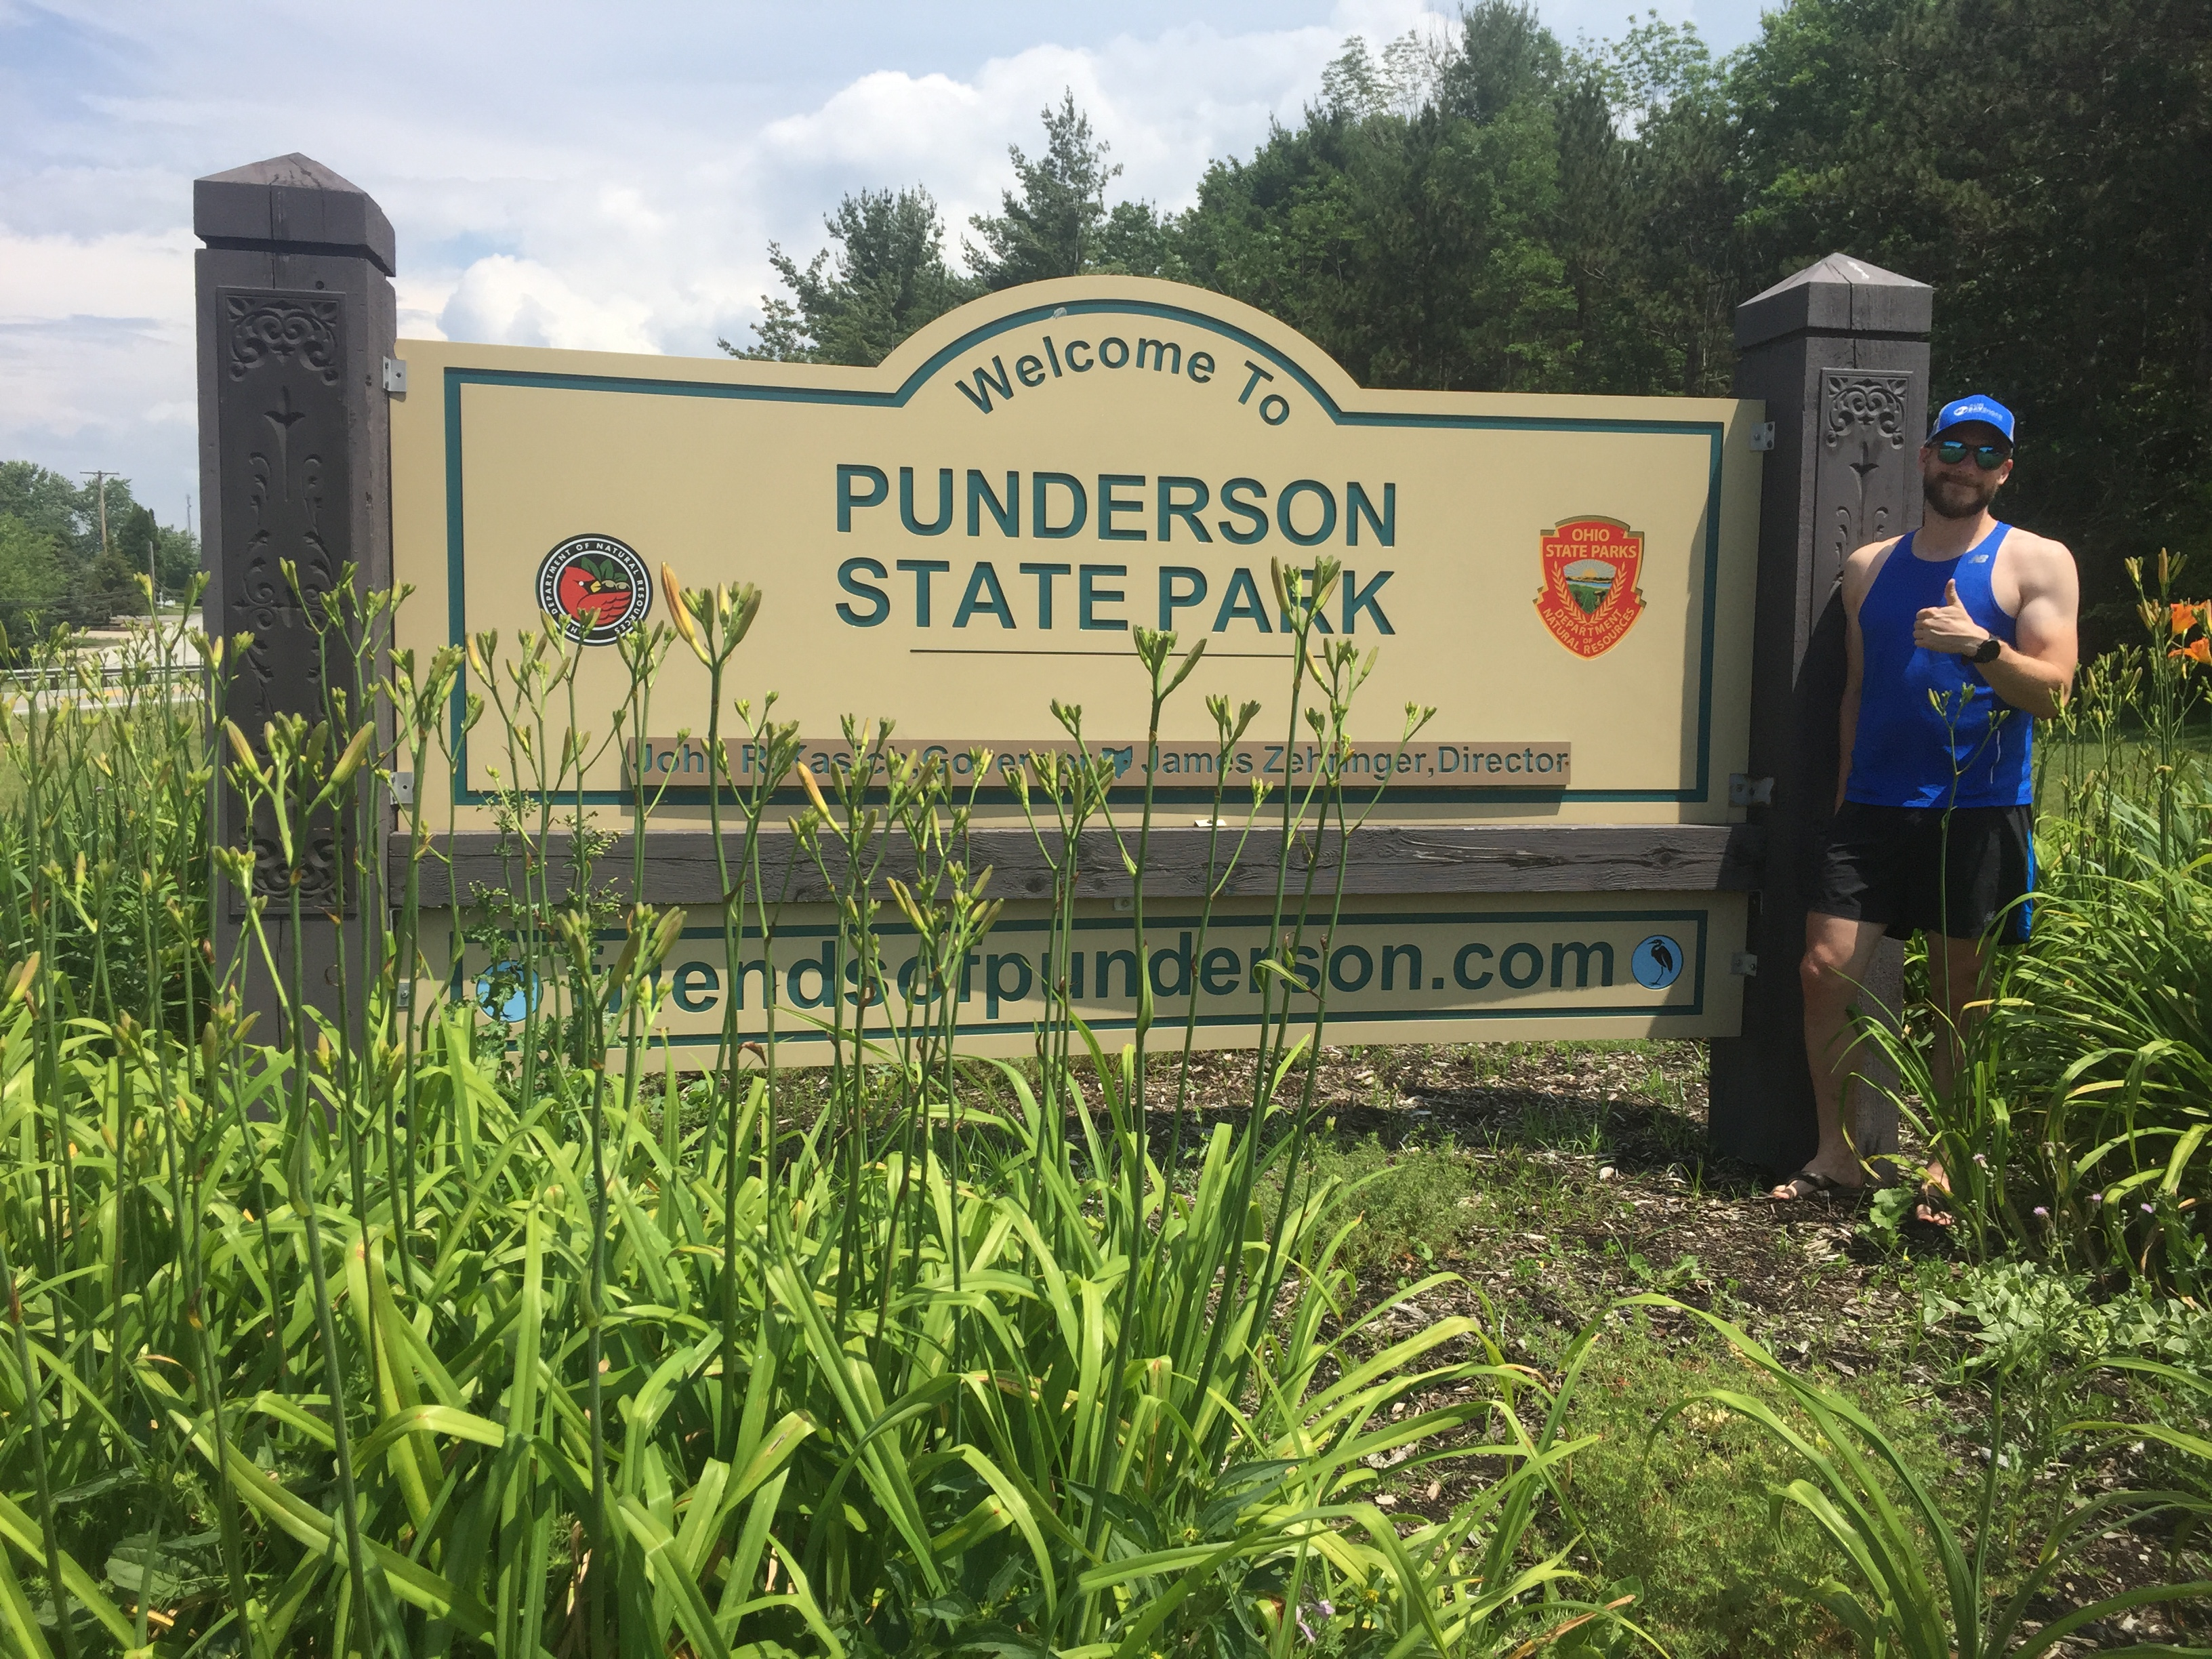 Punderson